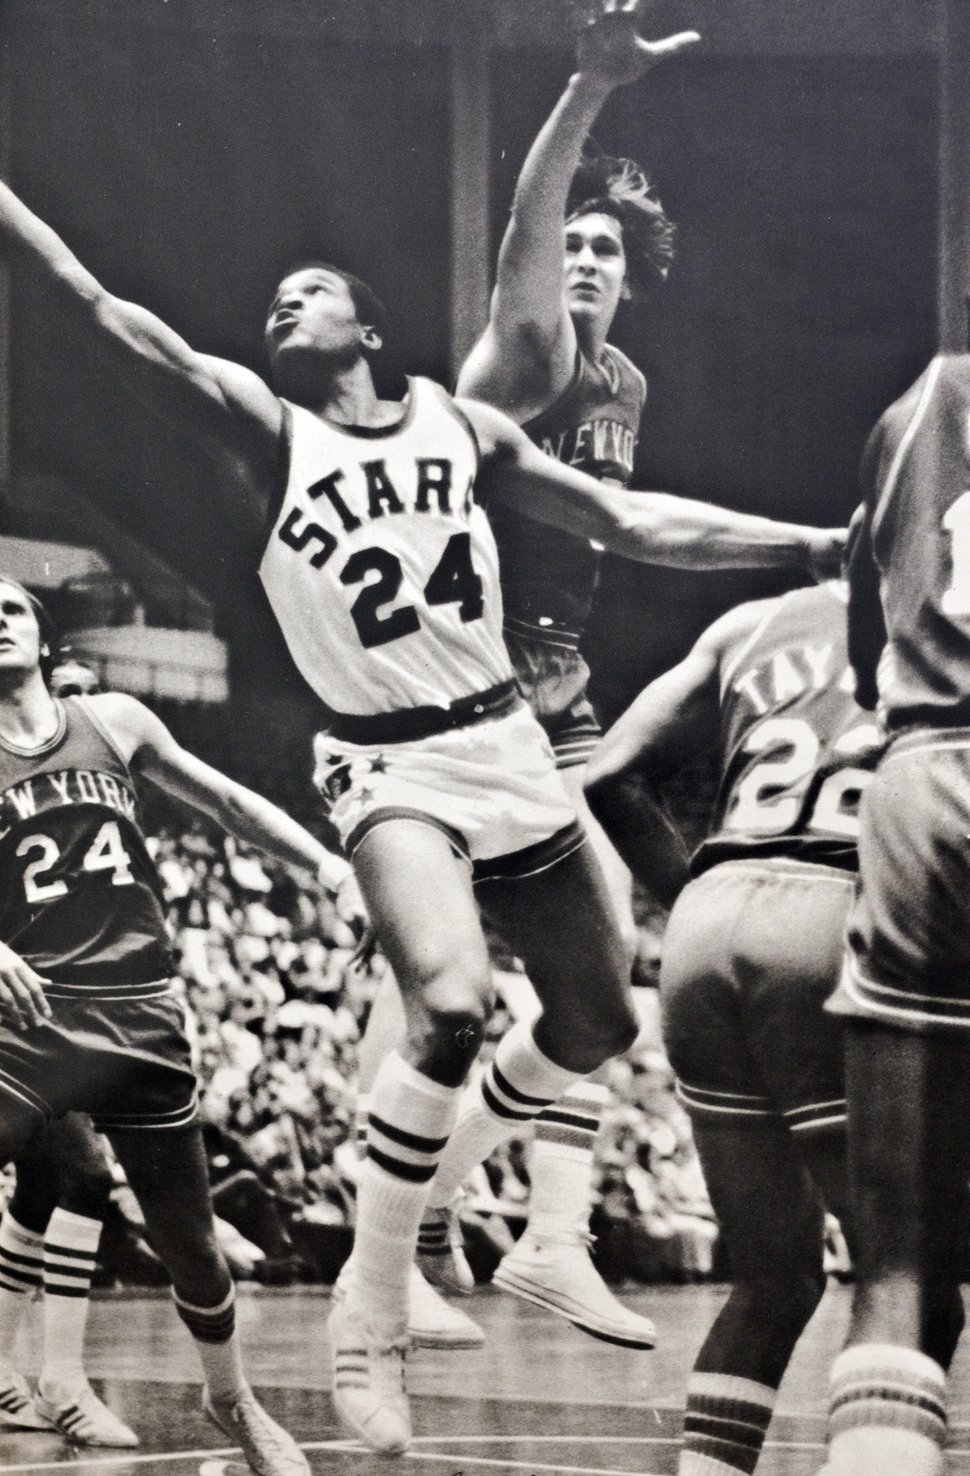 Photo courtesy of Mr. Mac | Utah Stars guard Ron Boone (25) lays the ball up in a crowd of New York Nets players during an ABA basketball game.